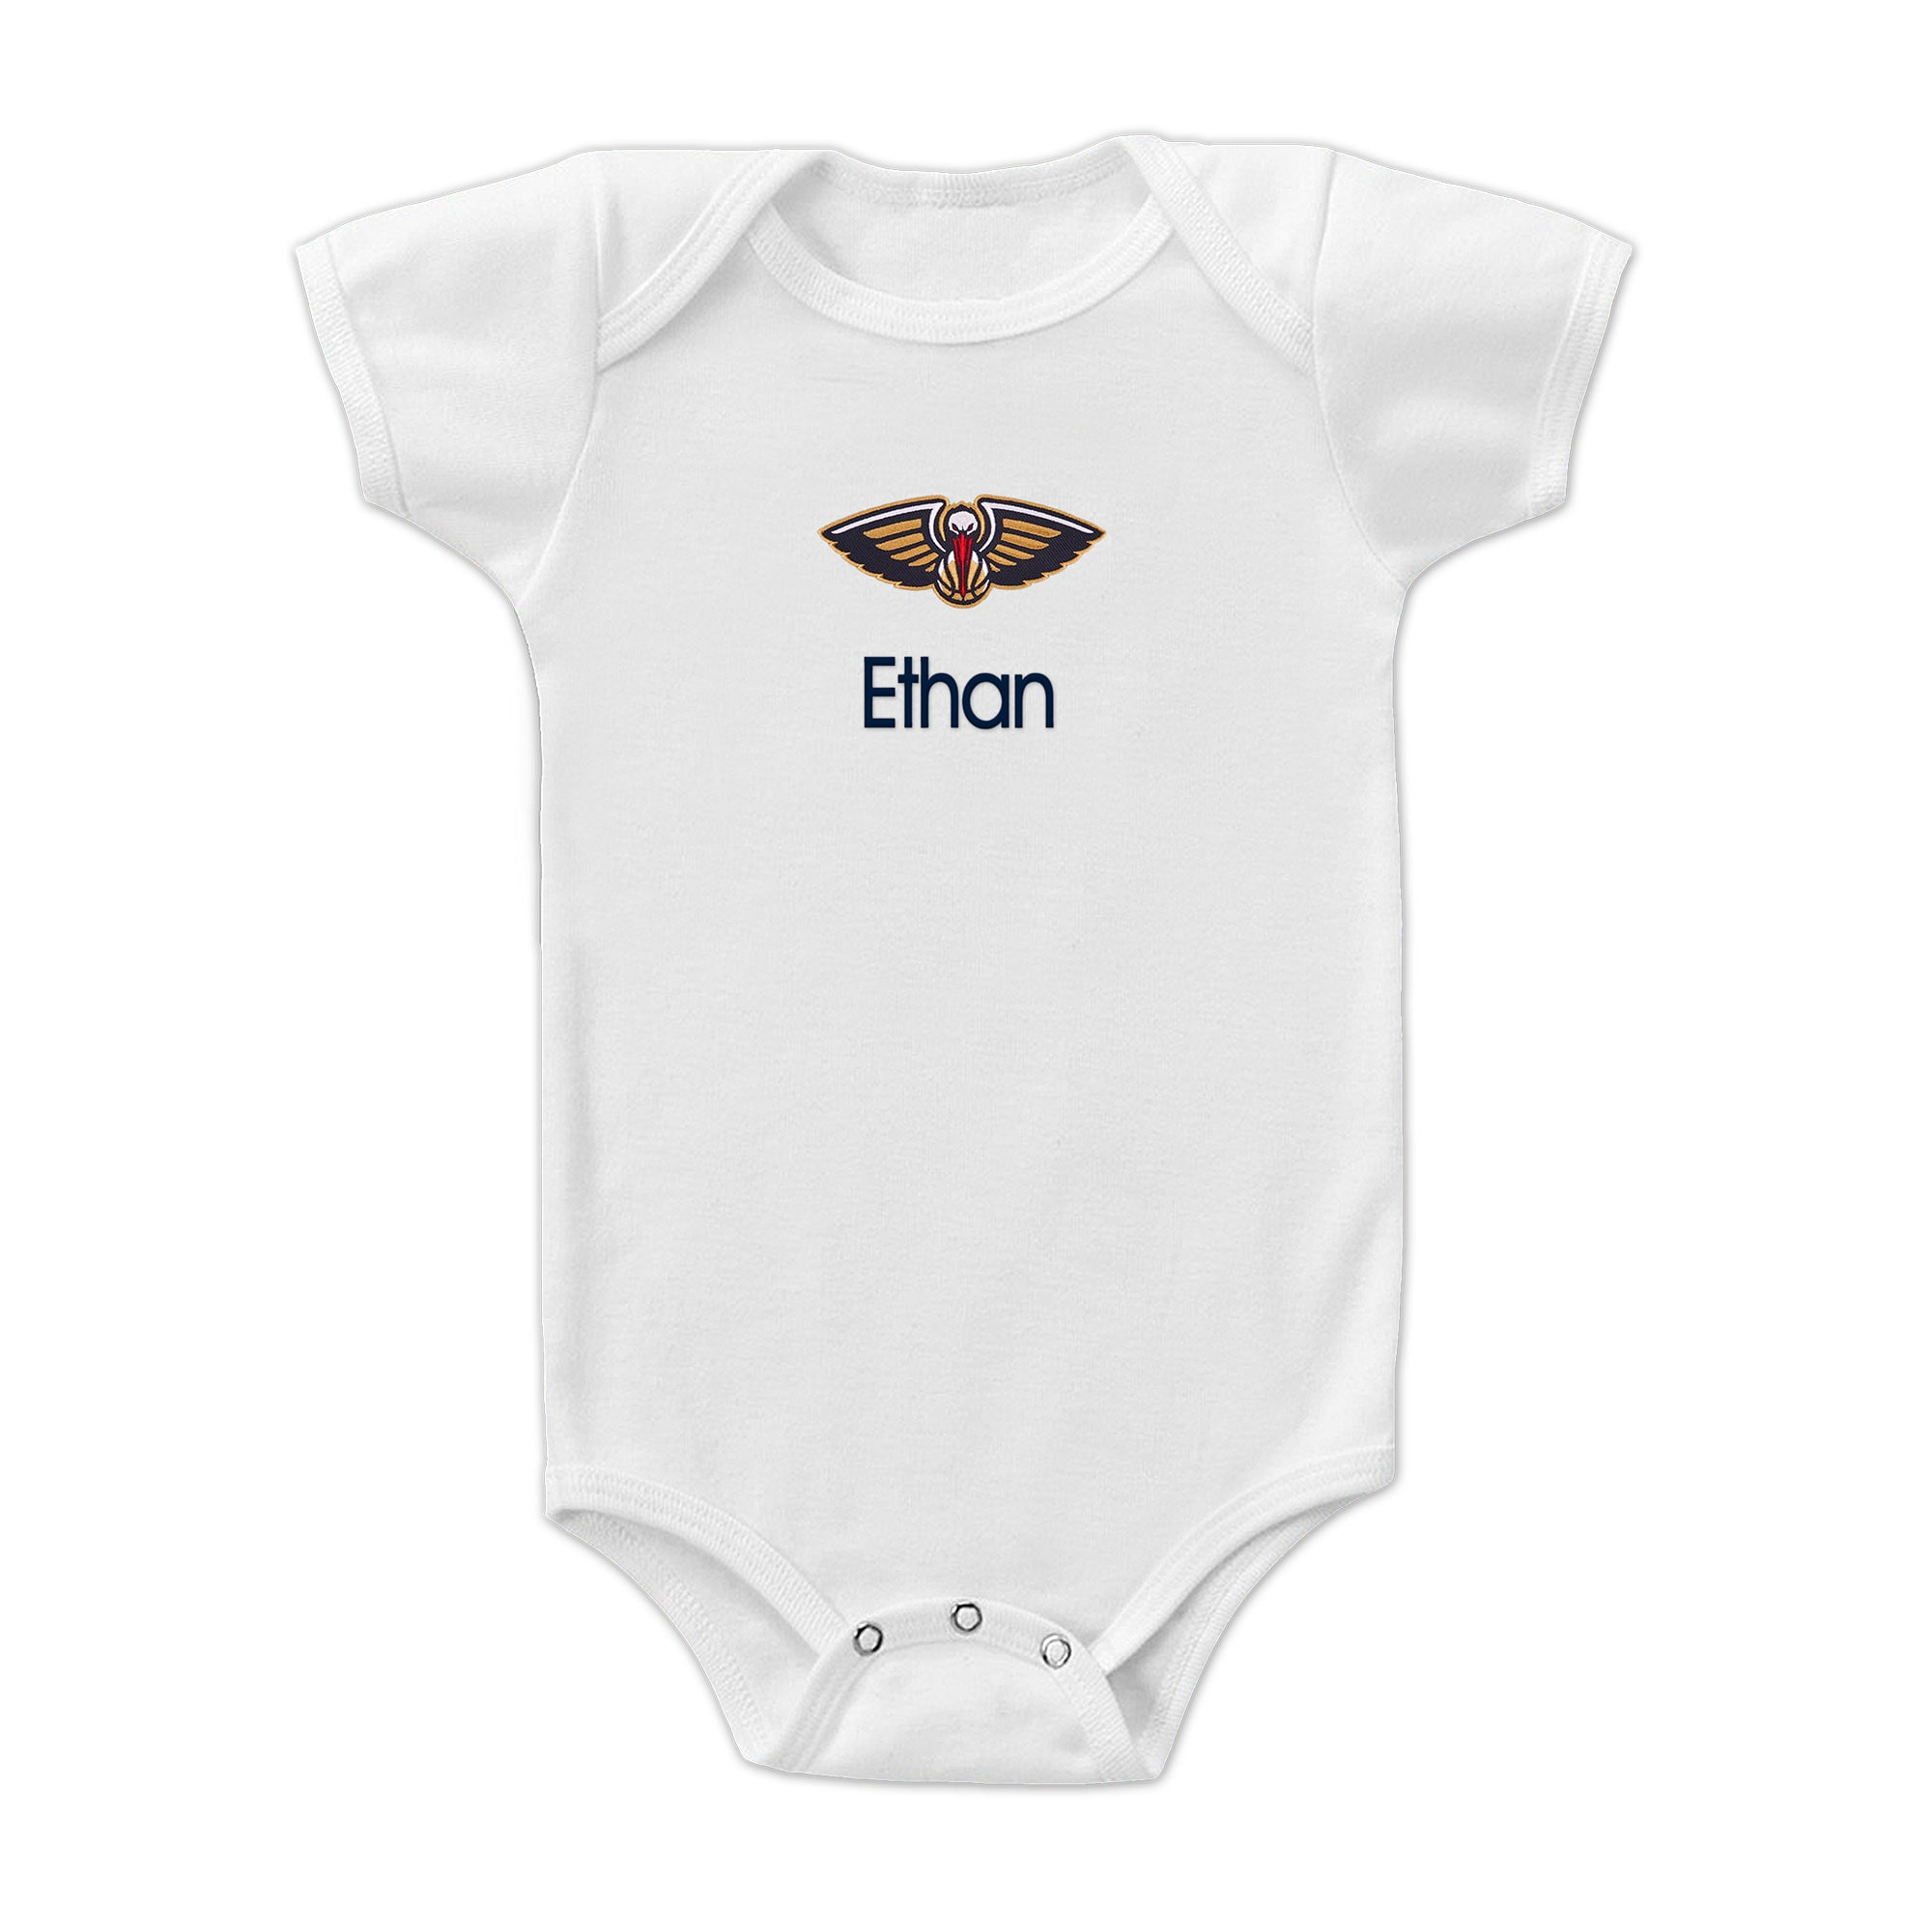 New Orleans Pelicans Infant Personalized Bodysuit - White